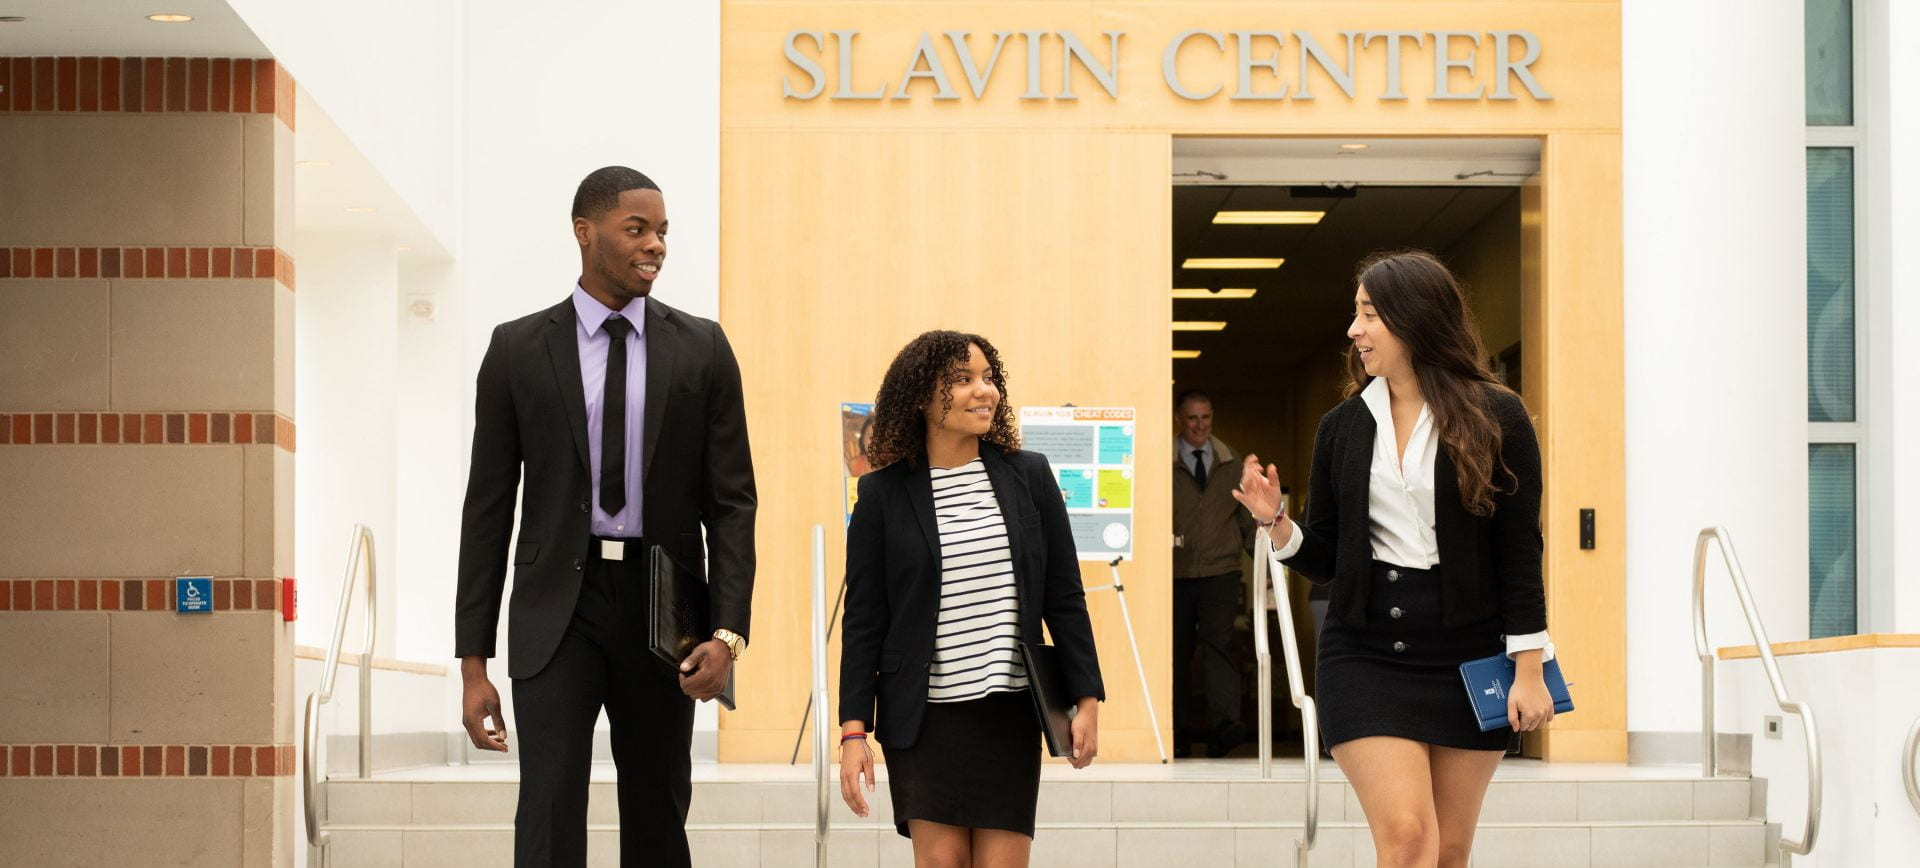 three students in suits walking in atrium